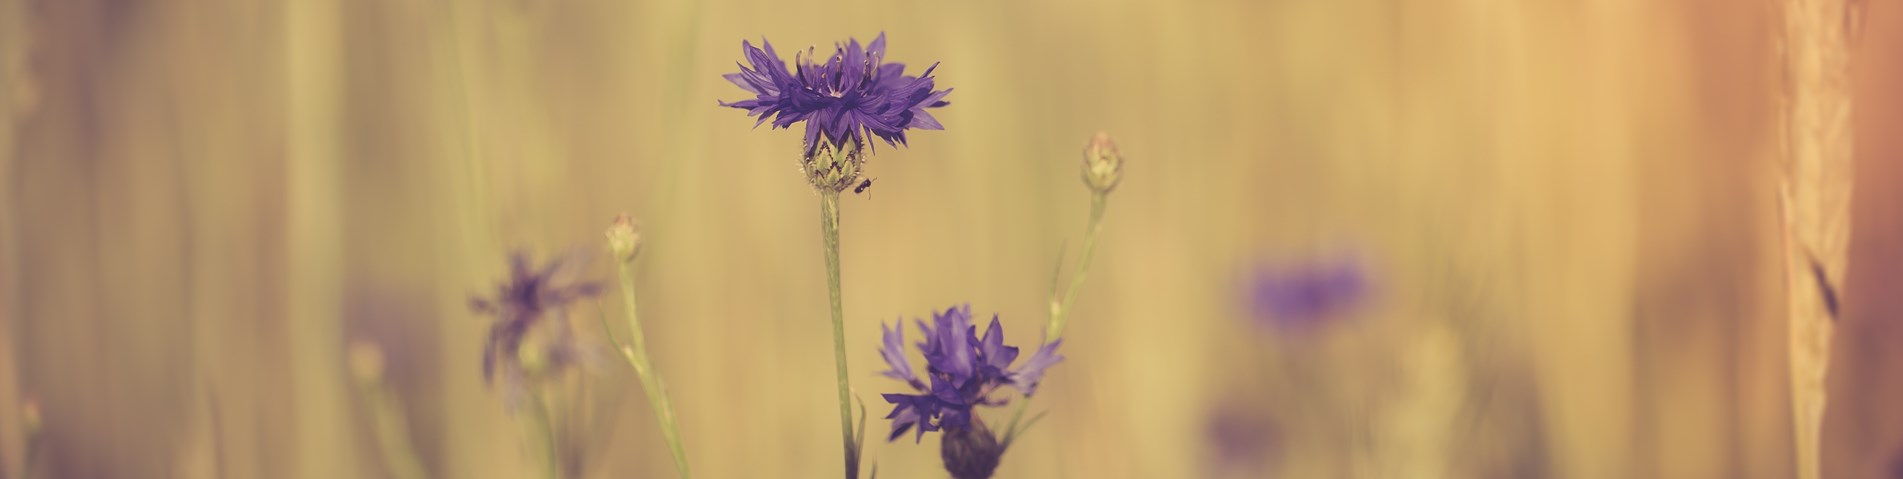 Abstract cornflower.jpg